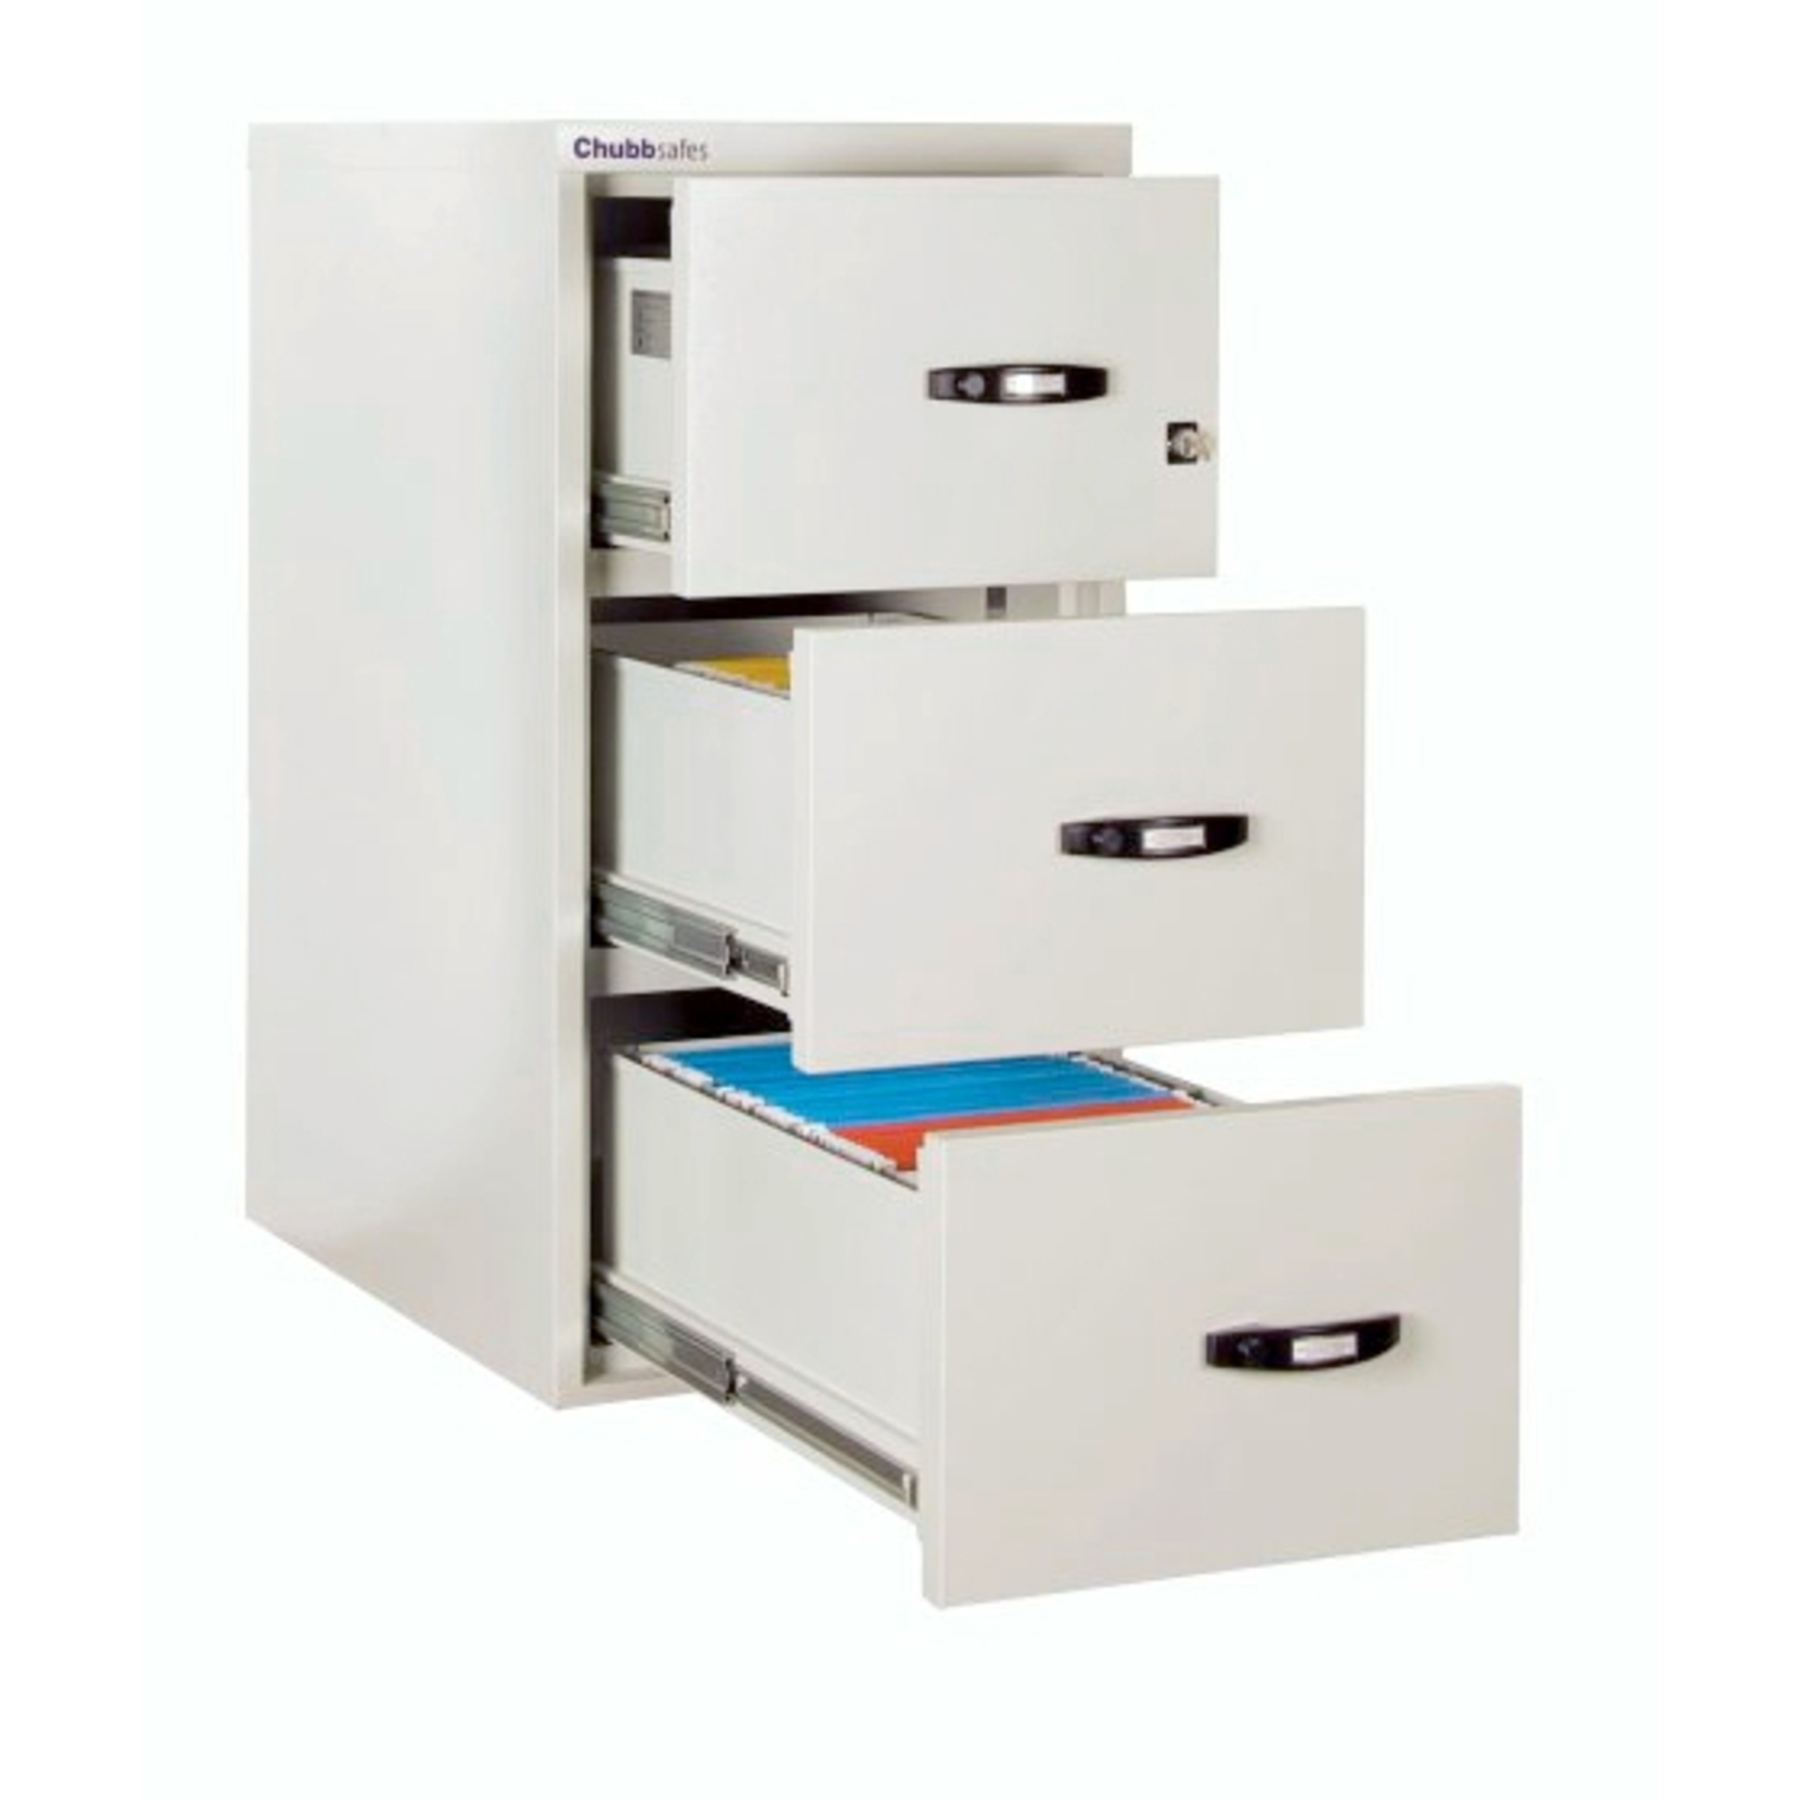 Chubbsafes Profile 3 Drawer Filing Cabinet   Fireproof ...